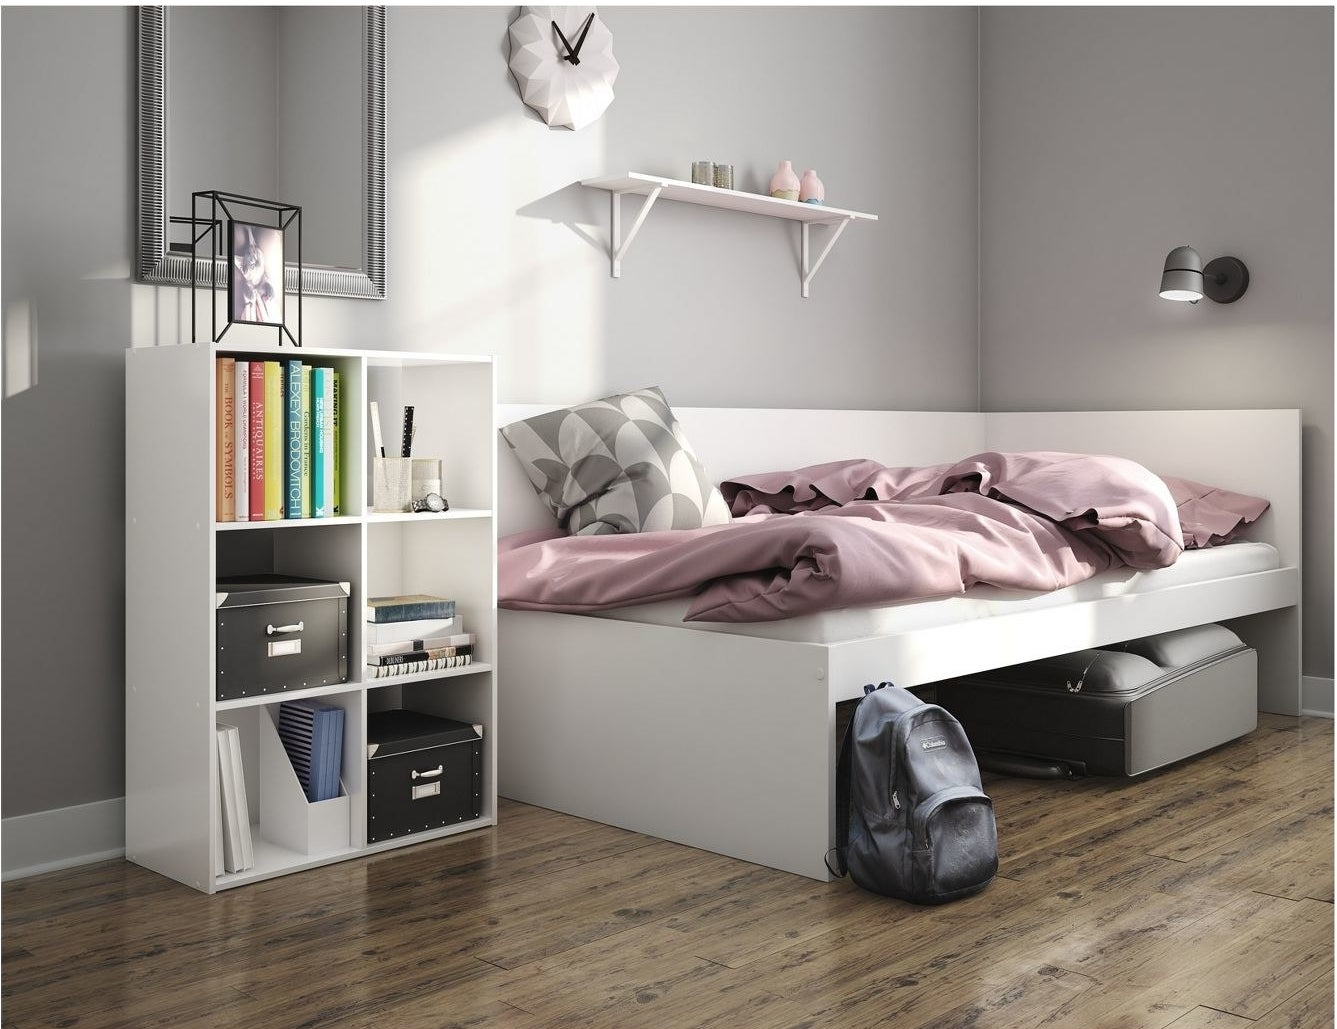 white 6-cube organizer holding various boxes and books next to a bed